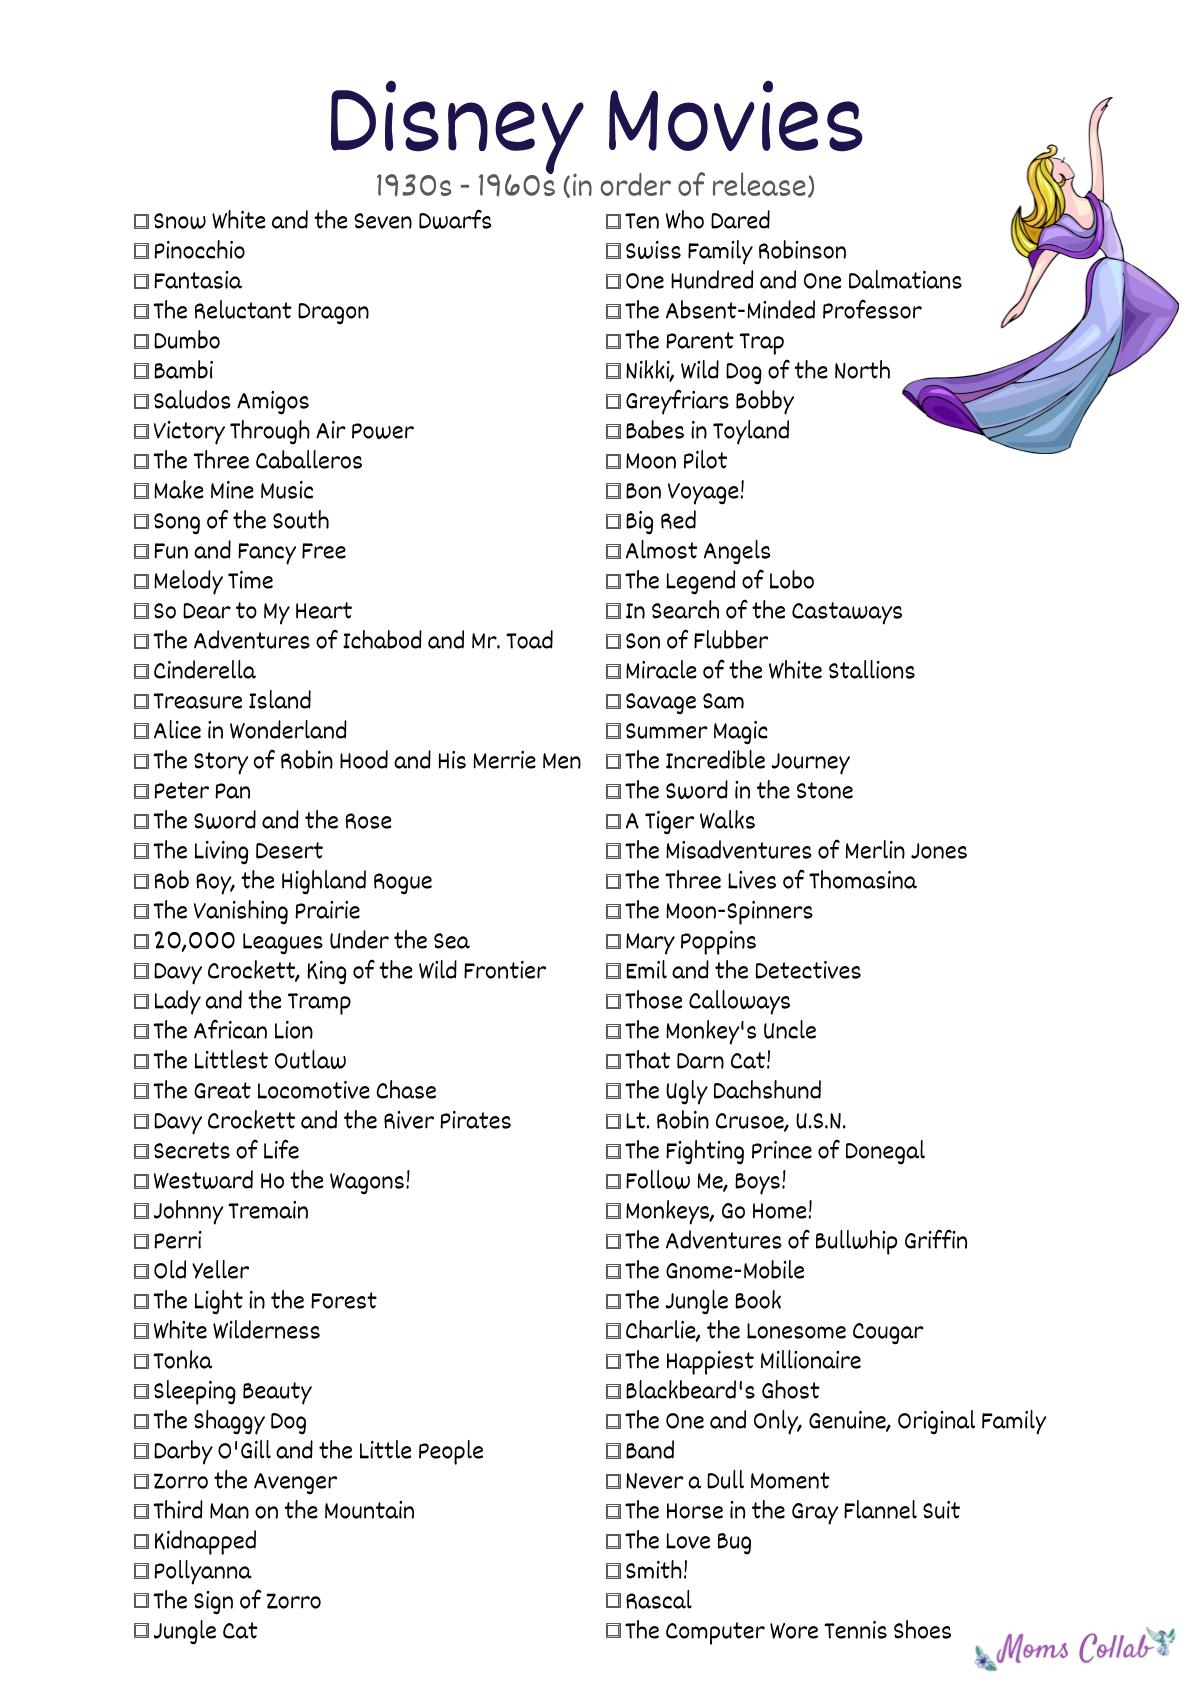 Disney Movies List That You Can Download For FREE | Moms Collab